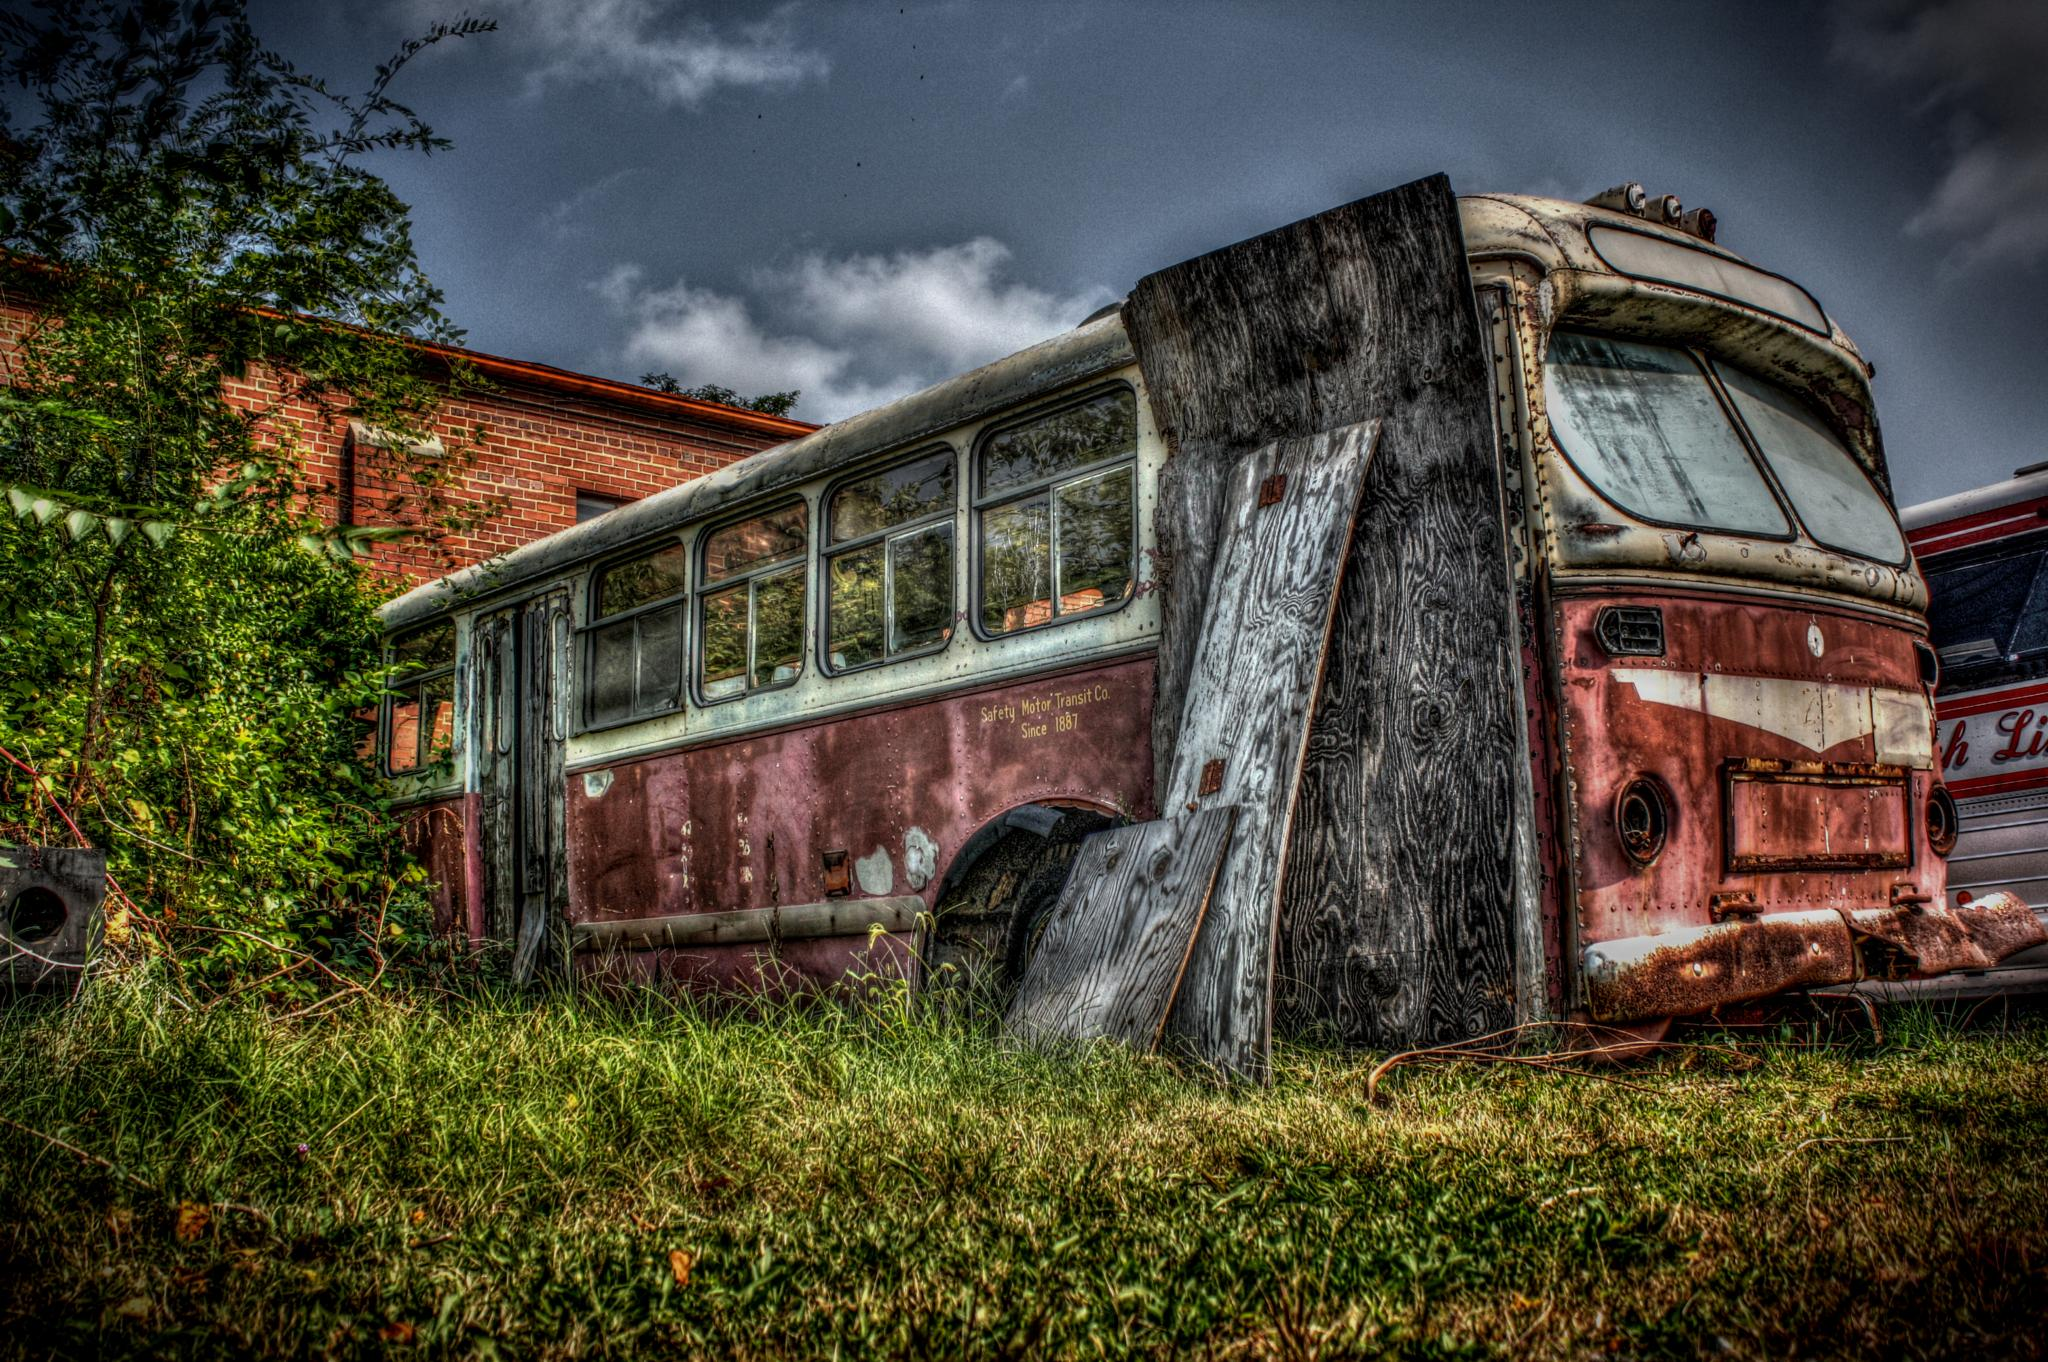 You've Taken Your Last Ride by DanStonePhoto